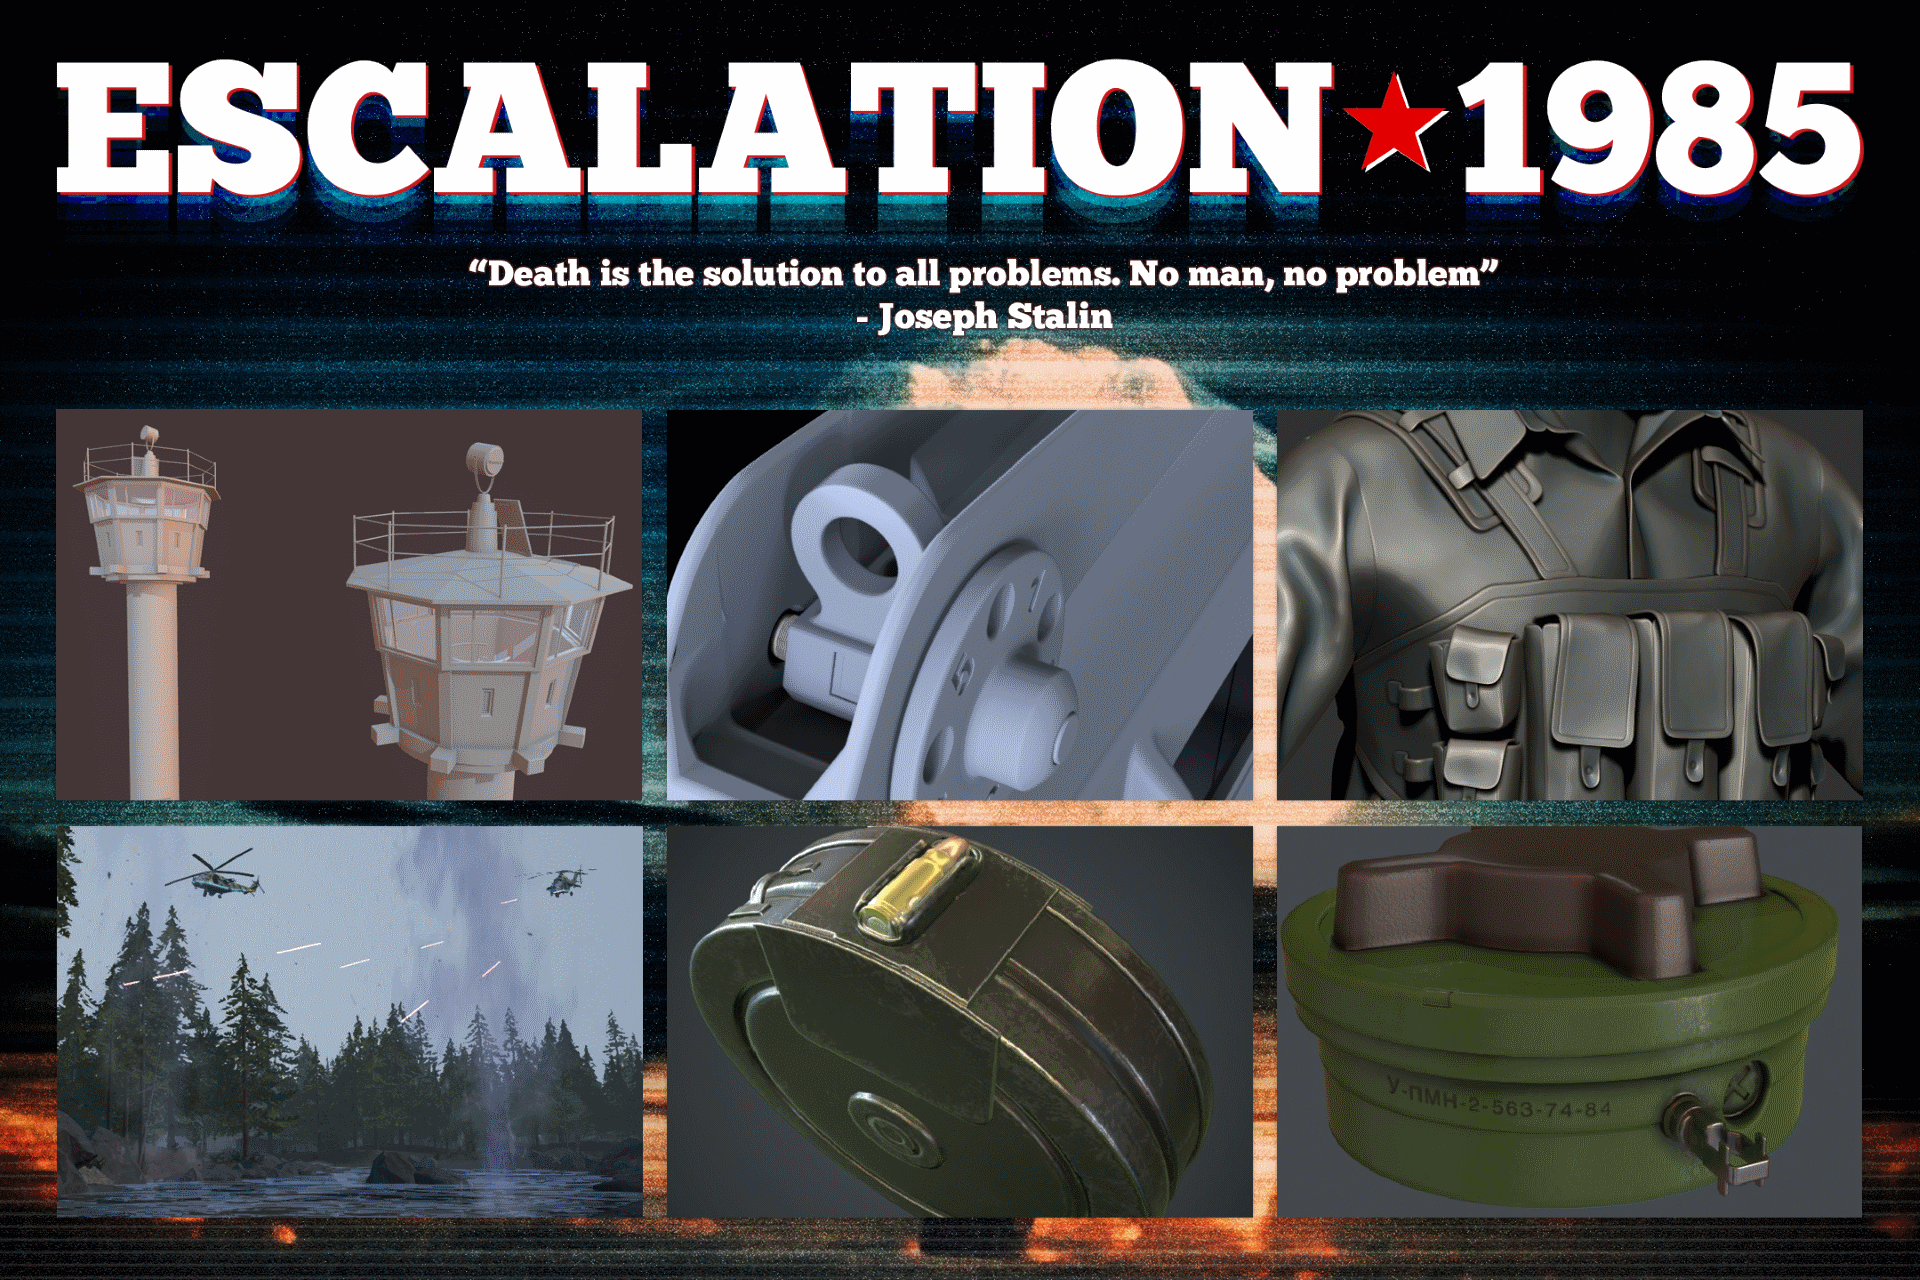 Escalation1985Artboard5.png